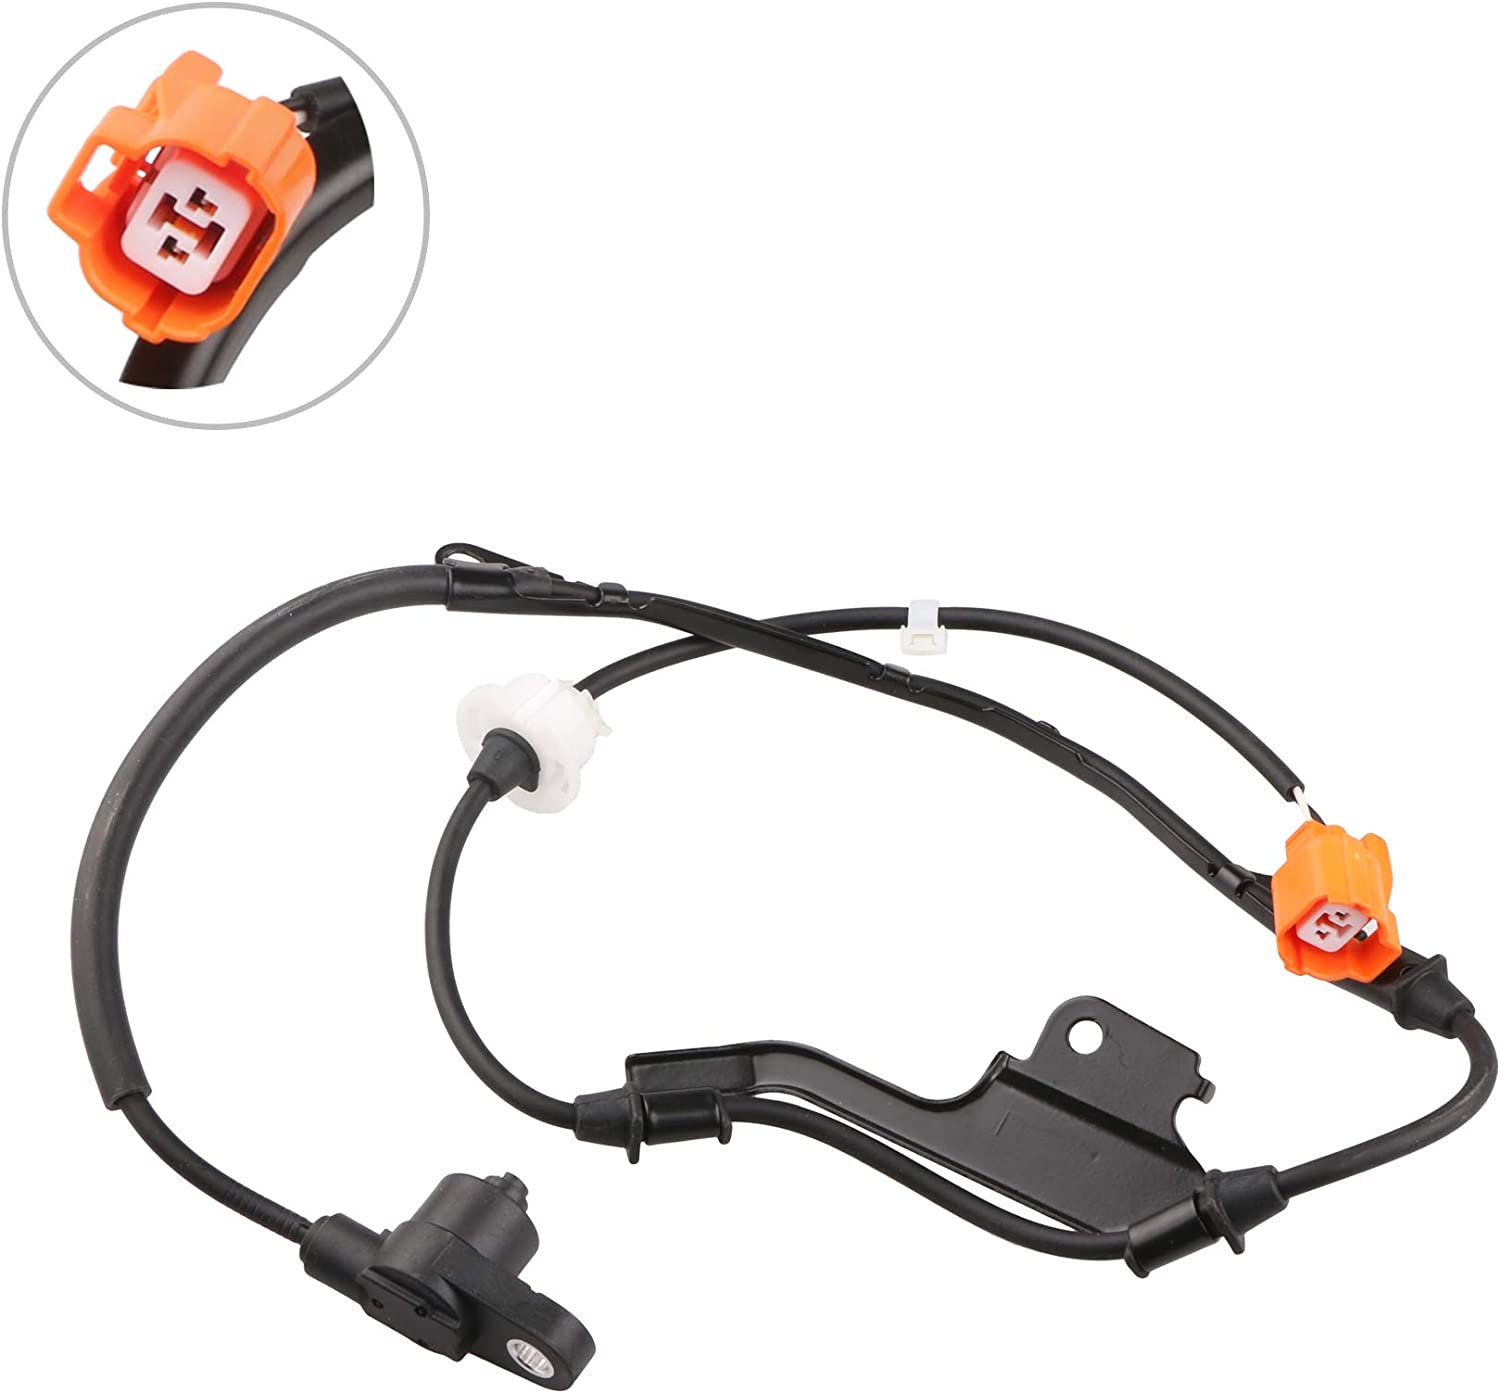 MOSTPLUS Front Left ABS Wheel Speed Sensor Compatible for 98-02 Honda Accord 99-03 ACURA TL 01-03 57455S84A52